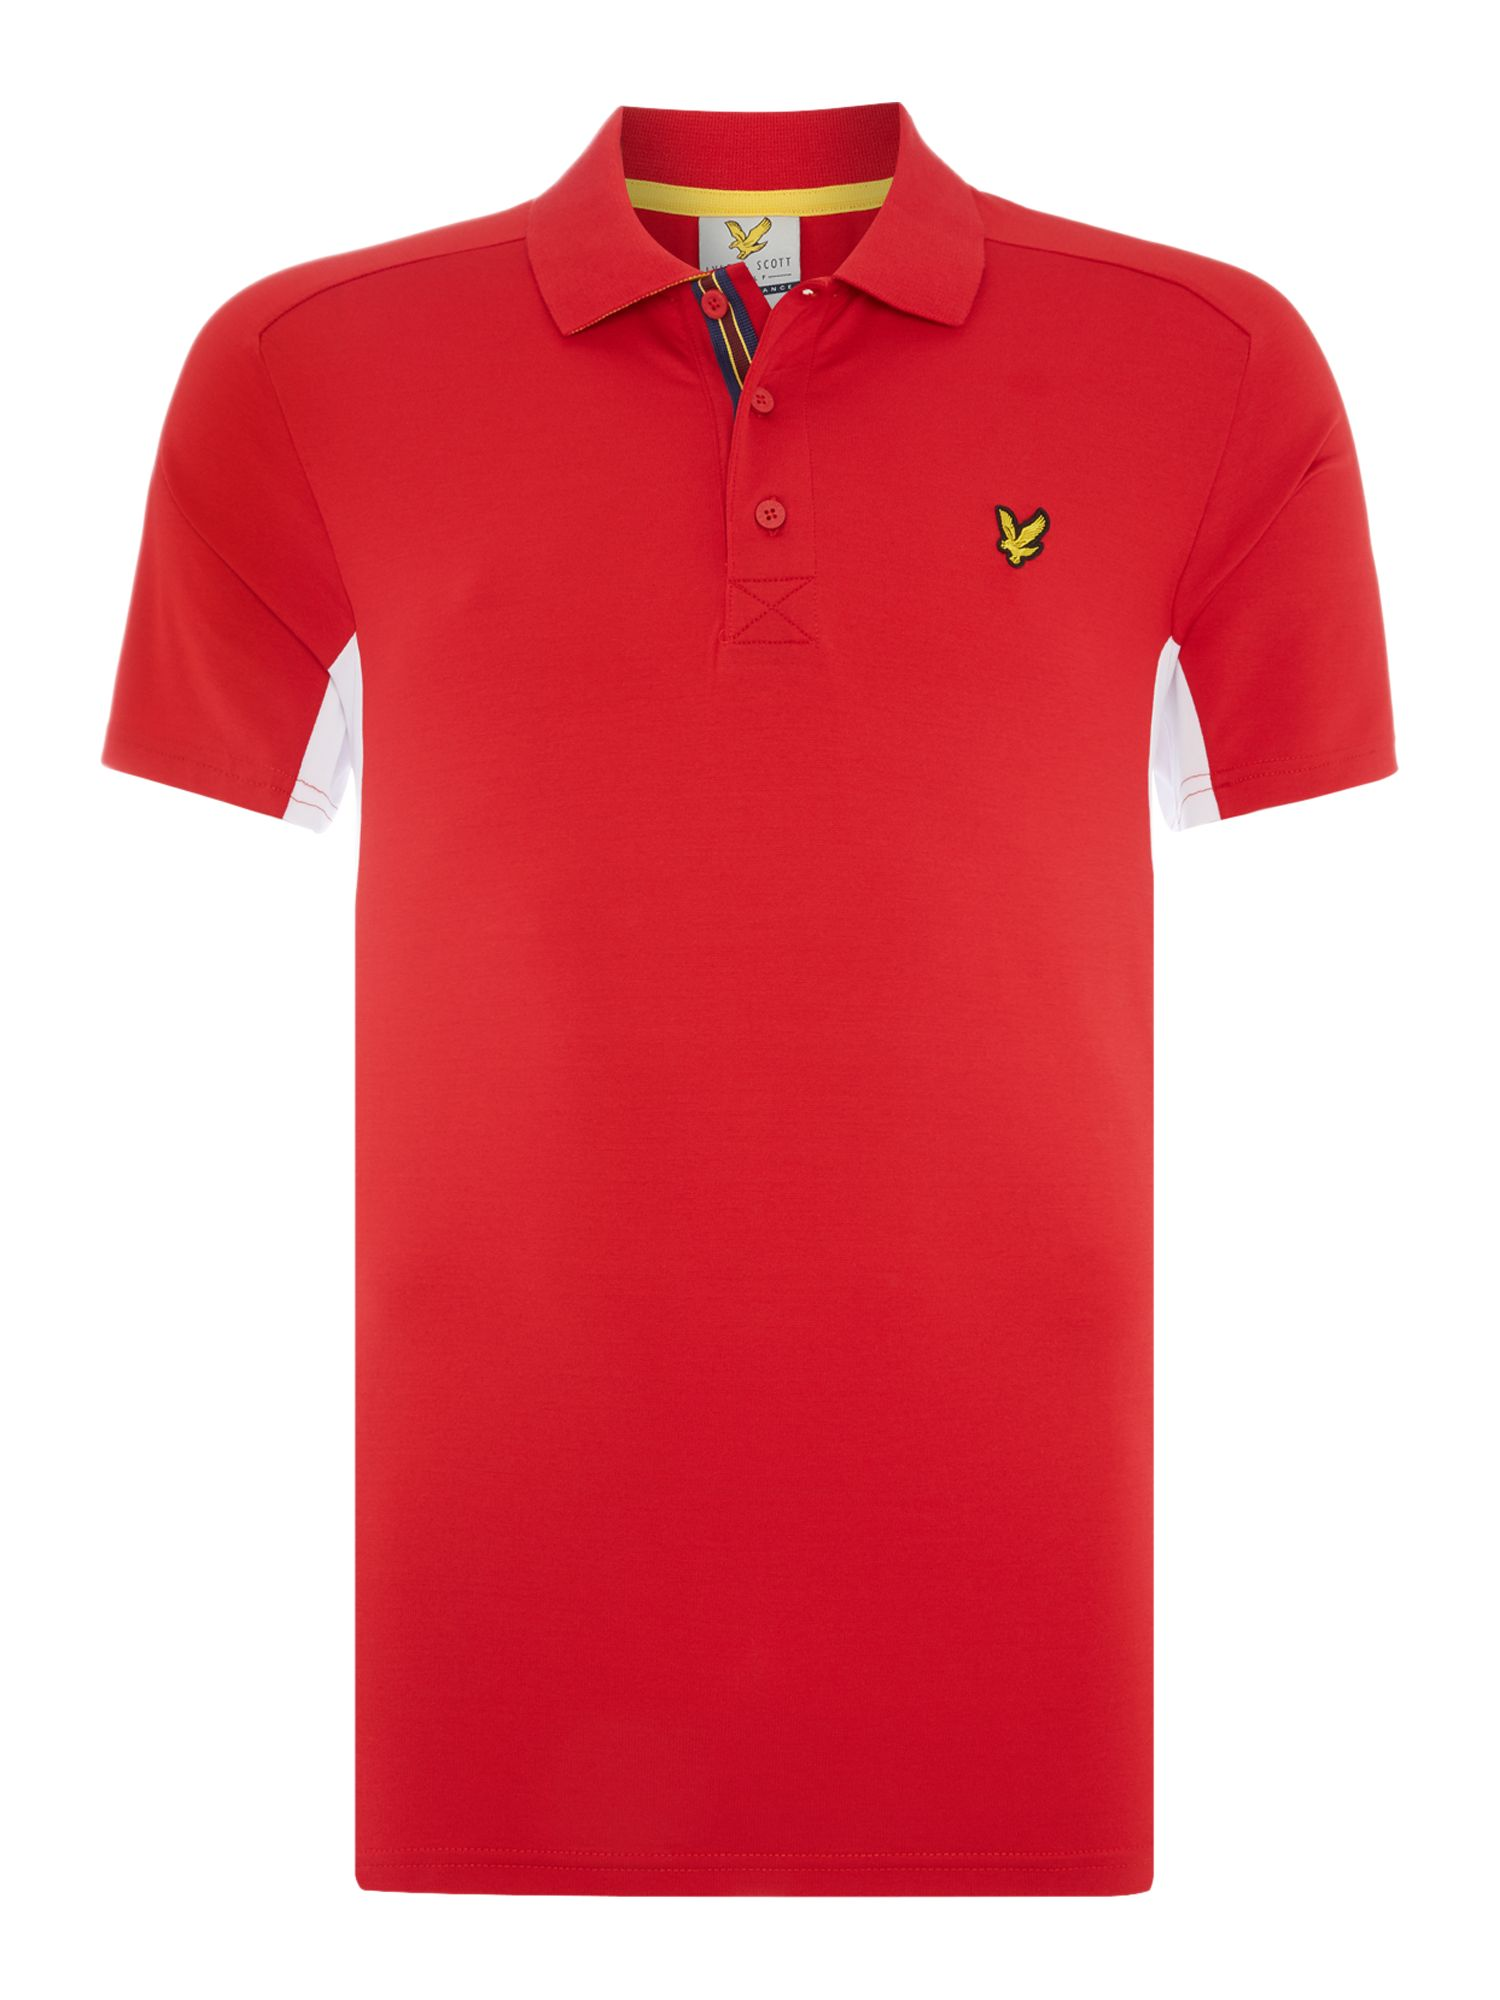 Lyle and Scott Men's Lyle and Scott Golf Short Sleeve Panel Polo Shirt, Red